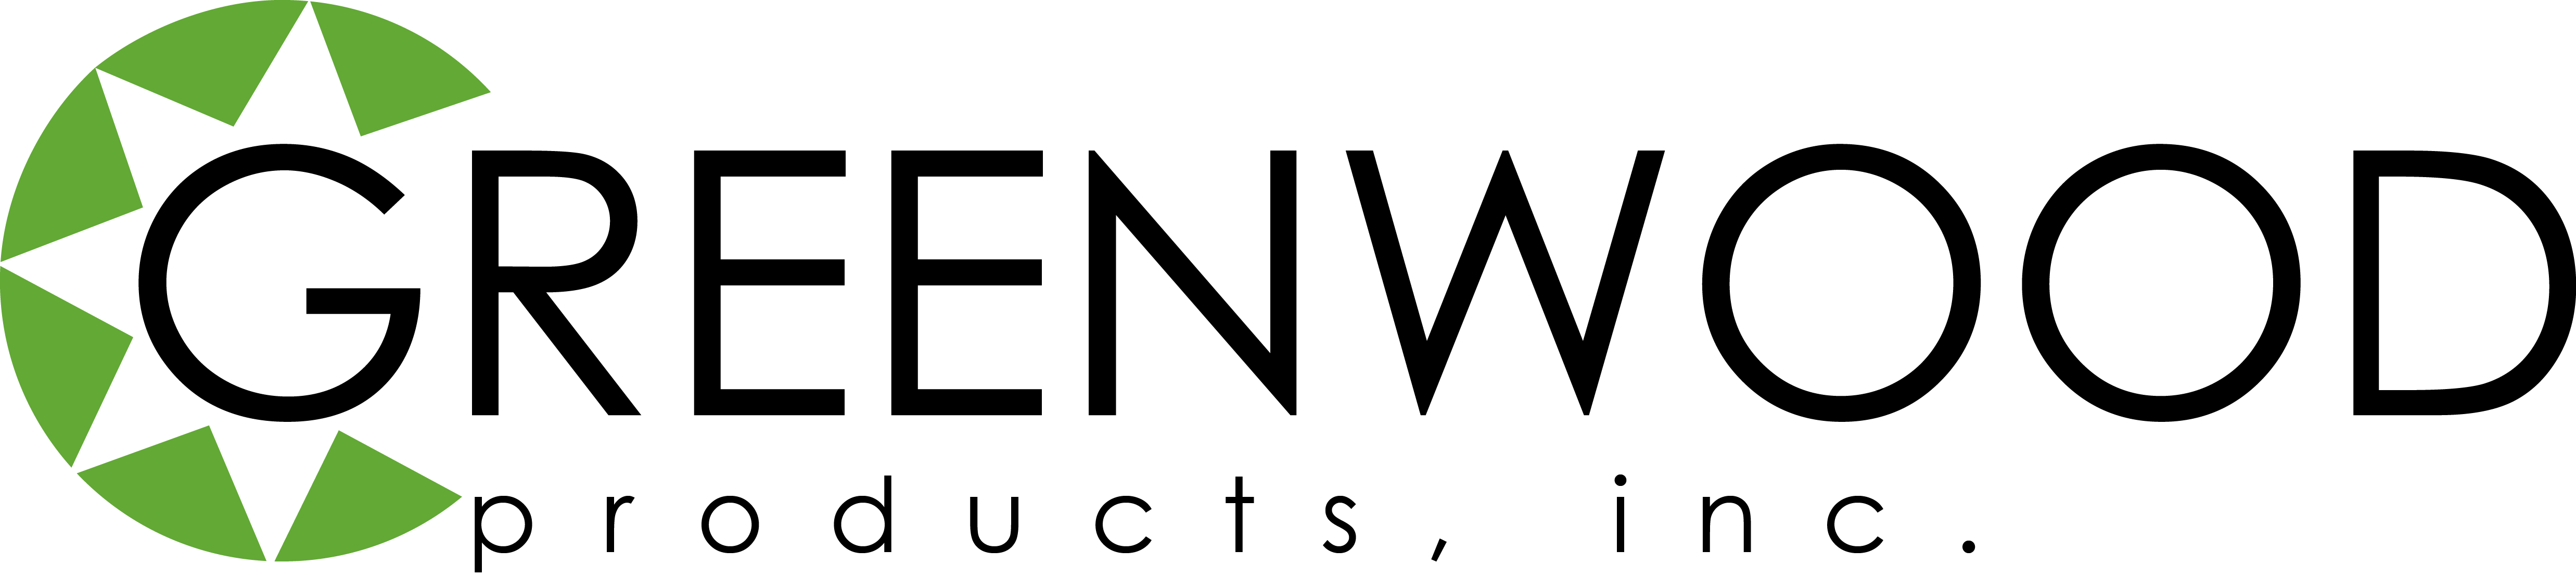 Greenwood Prodcuts, Inc.